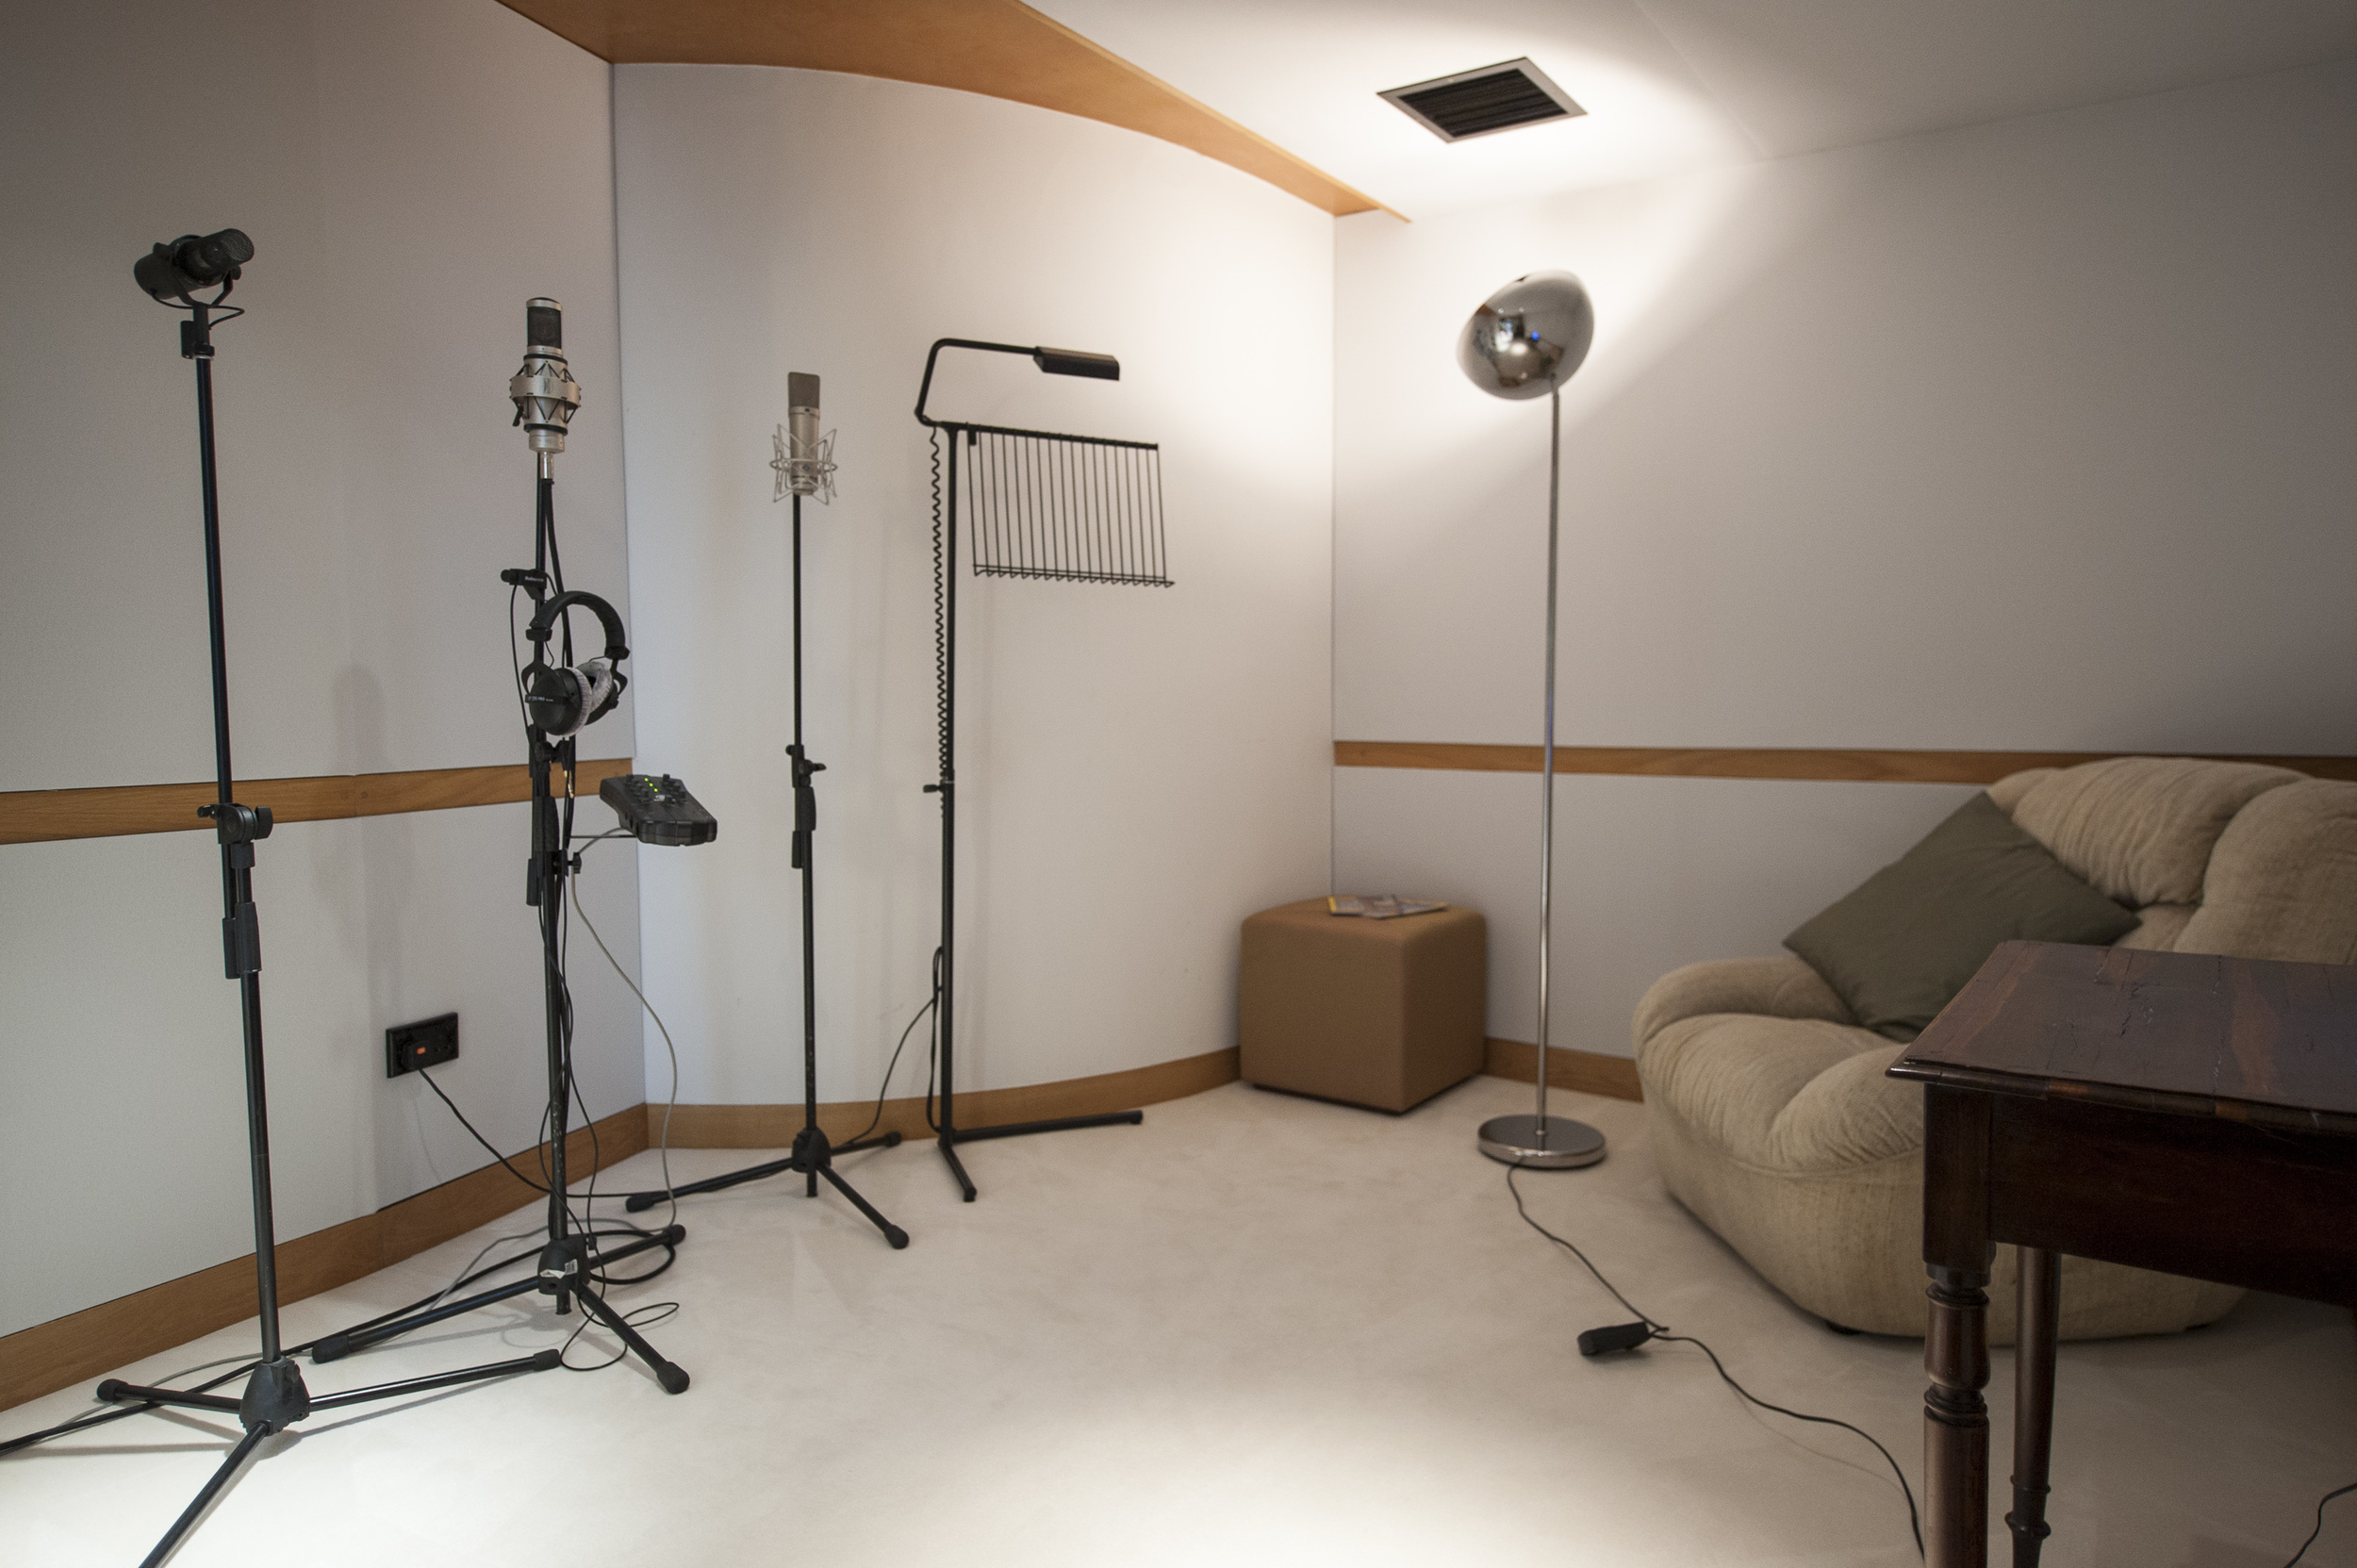 Vocal Booth at Westpoint Studios set up with our Brauner VMA, Neumann u87 and Shure SM7